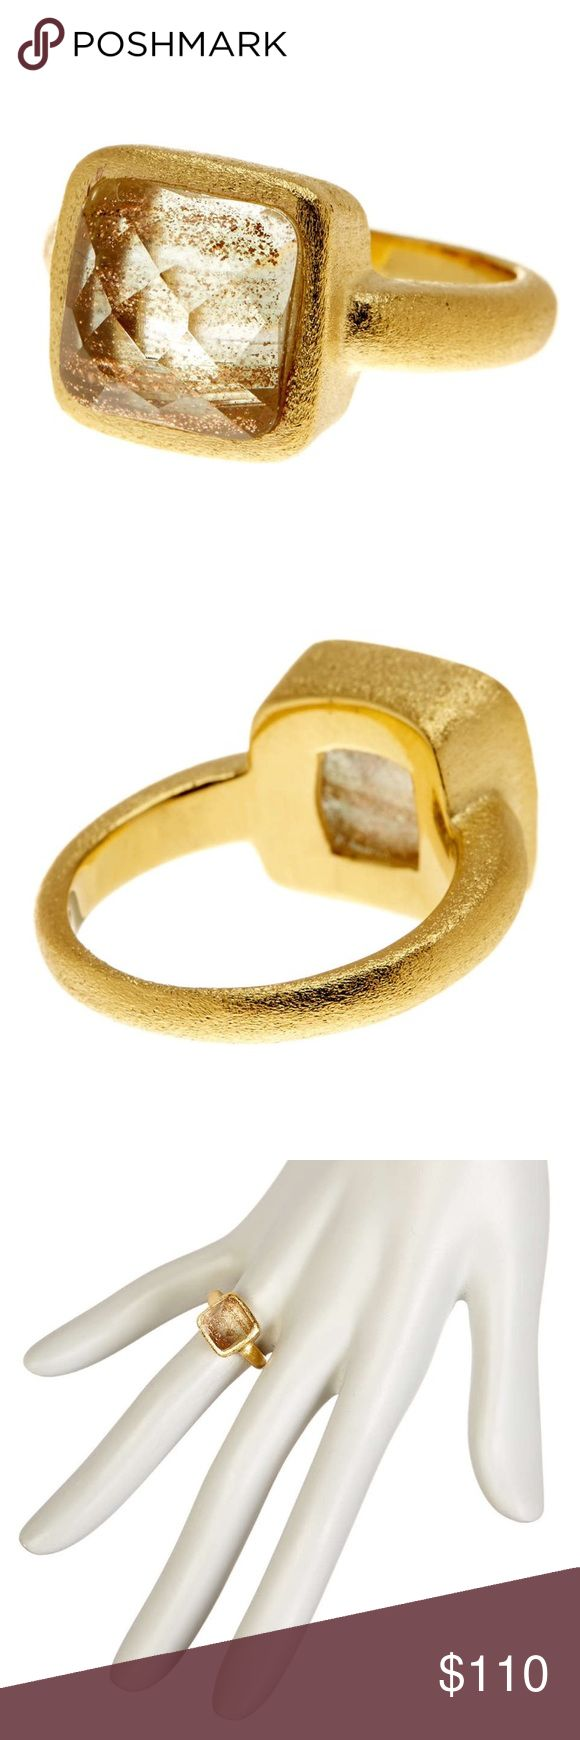 """rivka friedman // 18k gold crystal stacking ring NWT Rivka Friedman 18k gold plated ring with satin finish. Faceted crystal measures 0.5"""" by 0.5"""". Perfect for stacking or worn alone. The ideal neutral ring every fashionista needs in her wardrobe! Size 7. Rivka Friedman Jewelry Rings"""